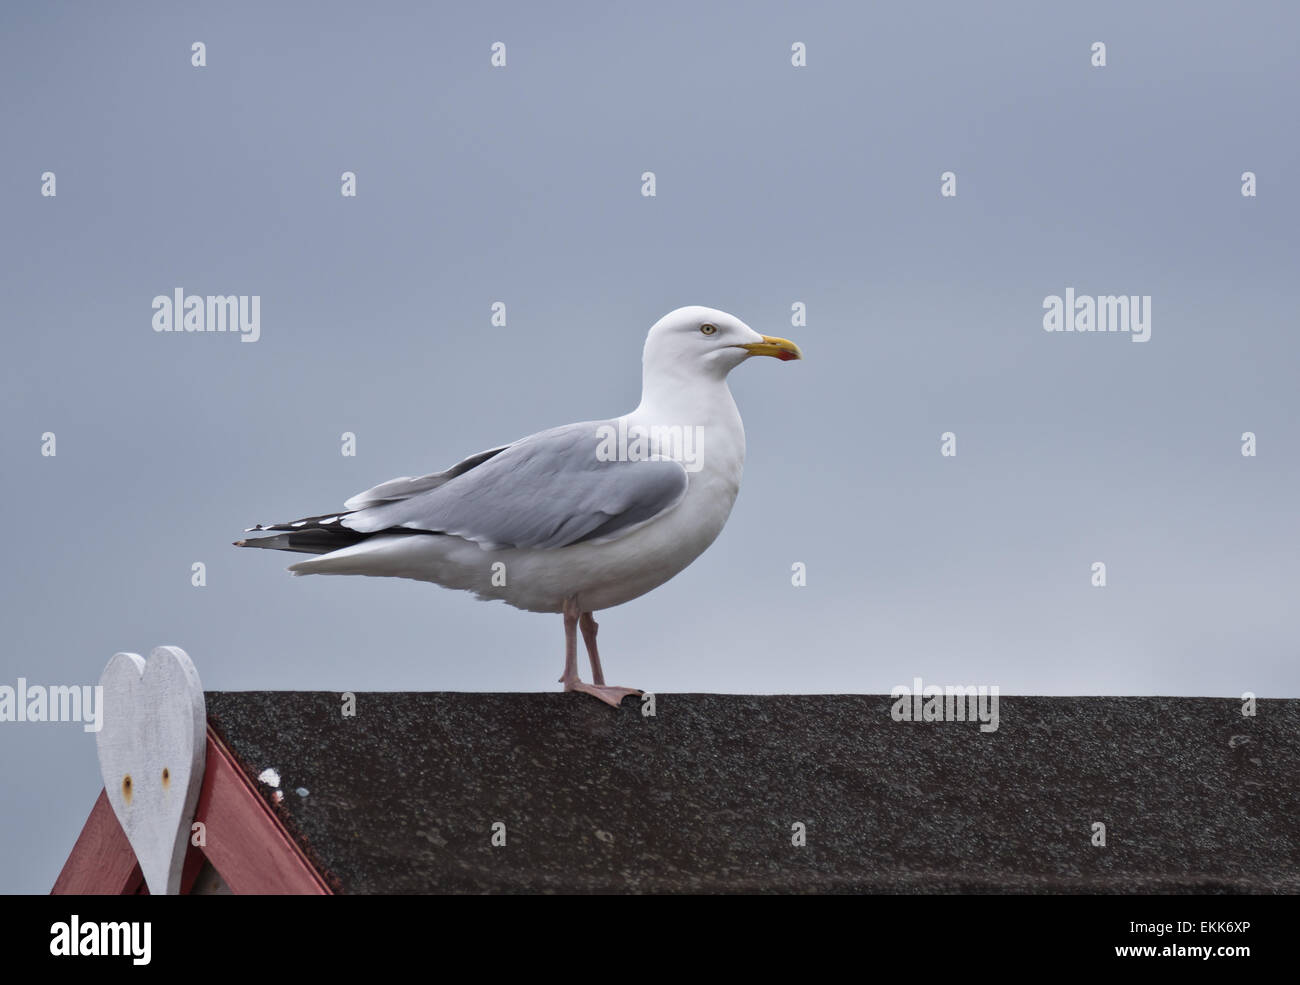 A seagull sat on a beach hut roof  Laridae - Stock Image